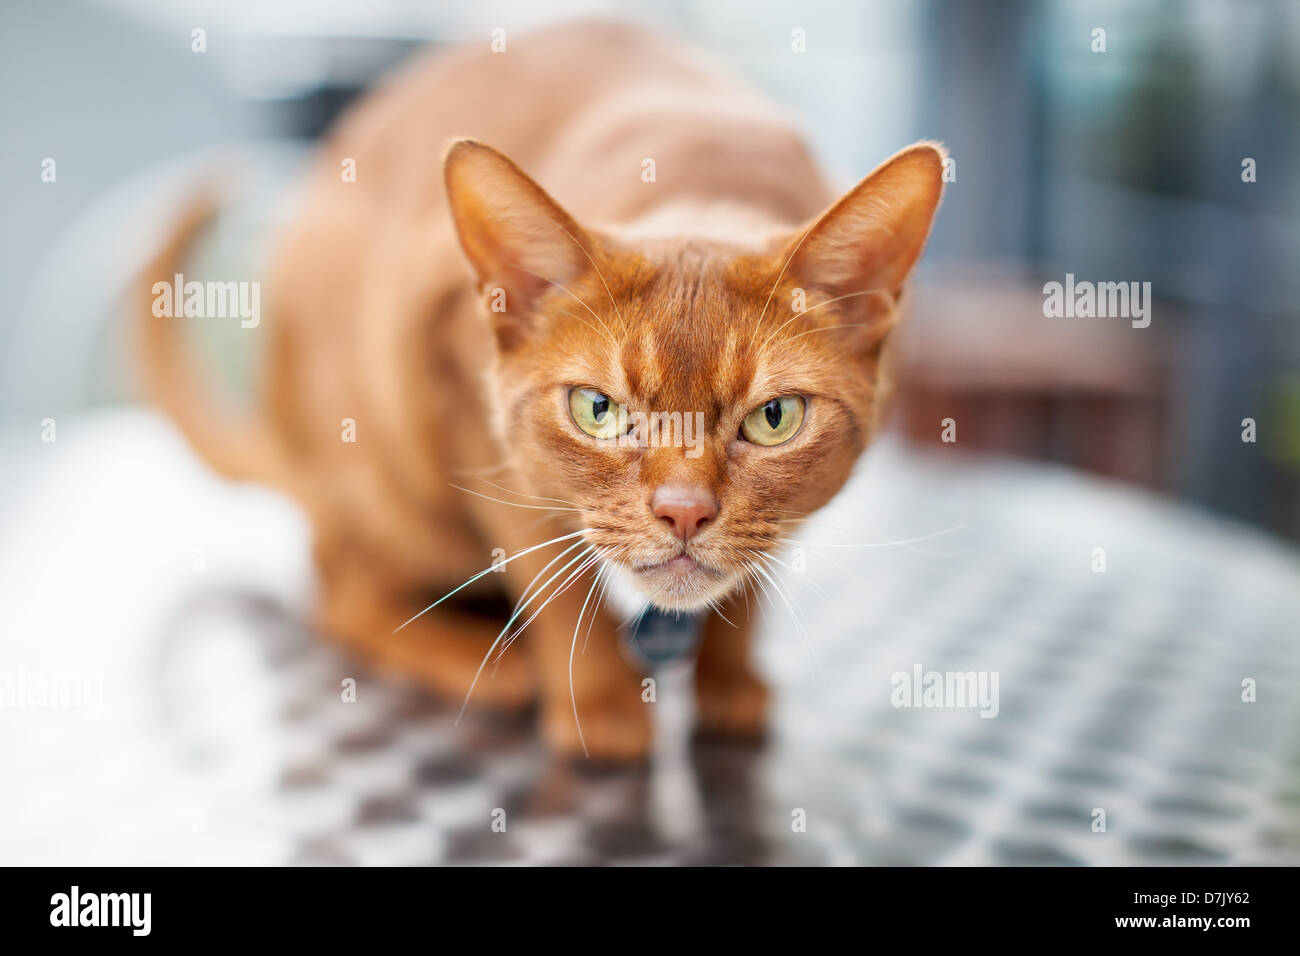 Crouched red Abyssinian cat on table with angry expression - Stock Image